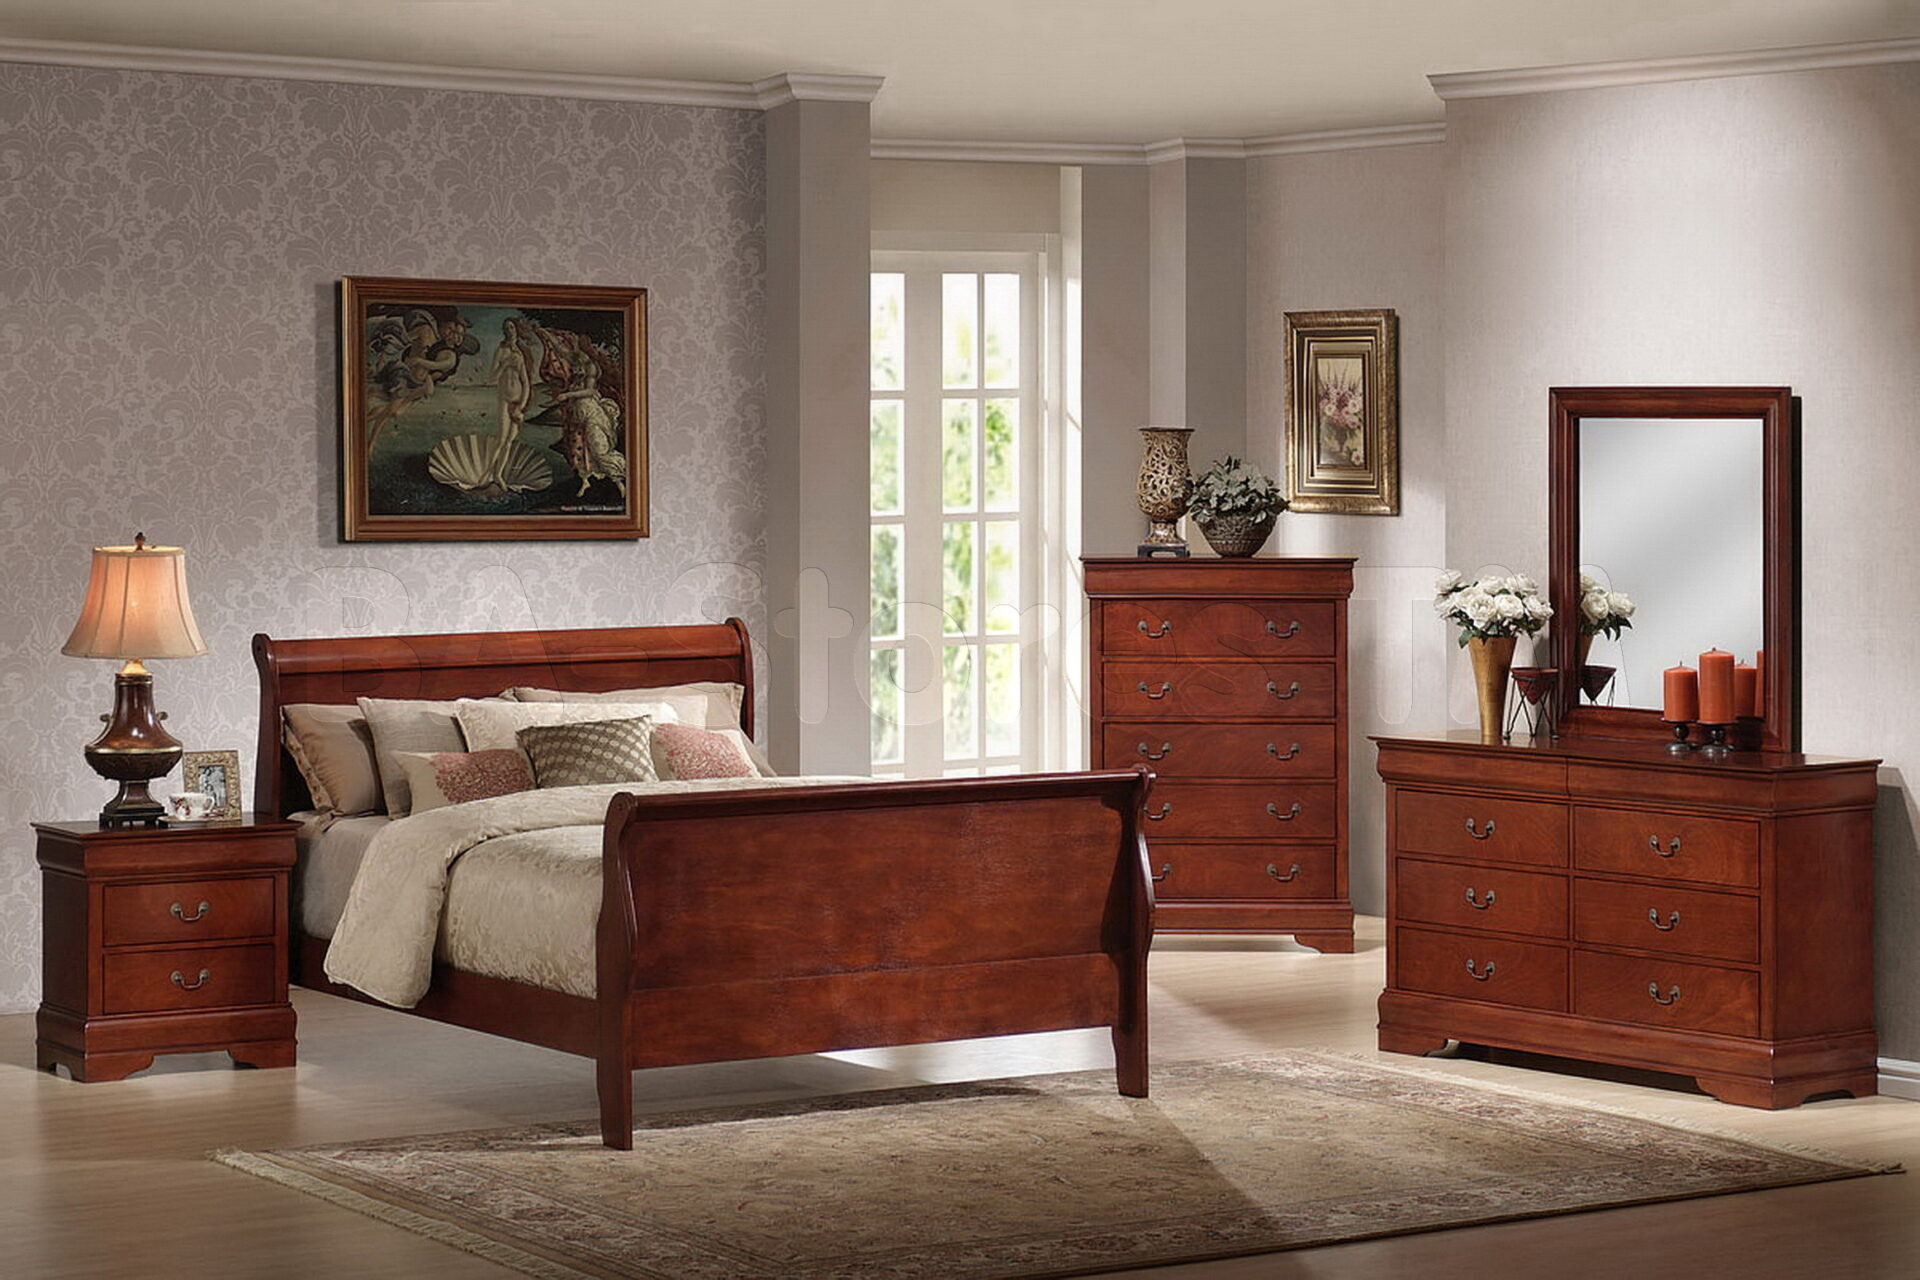 cherry wood bedroom furniture archives wooden furniture hub